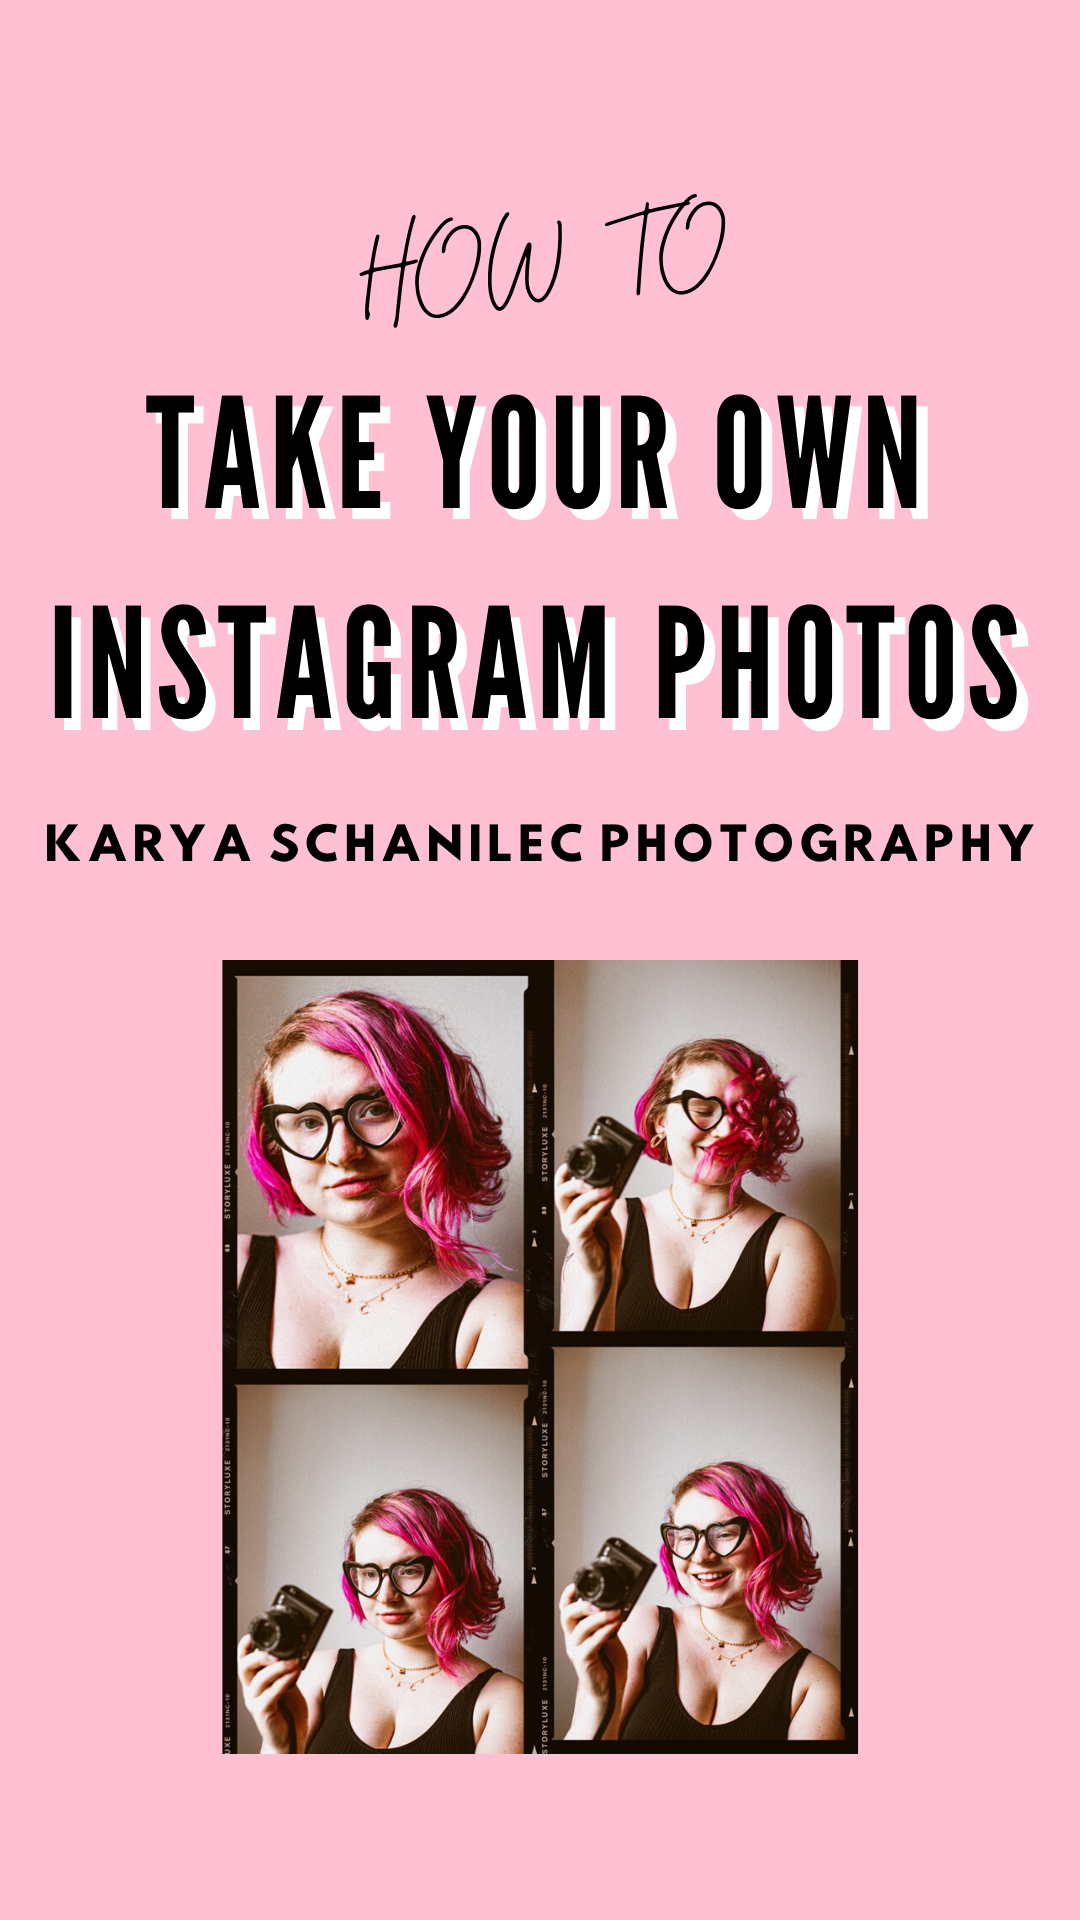 How to take your own Instagram photos